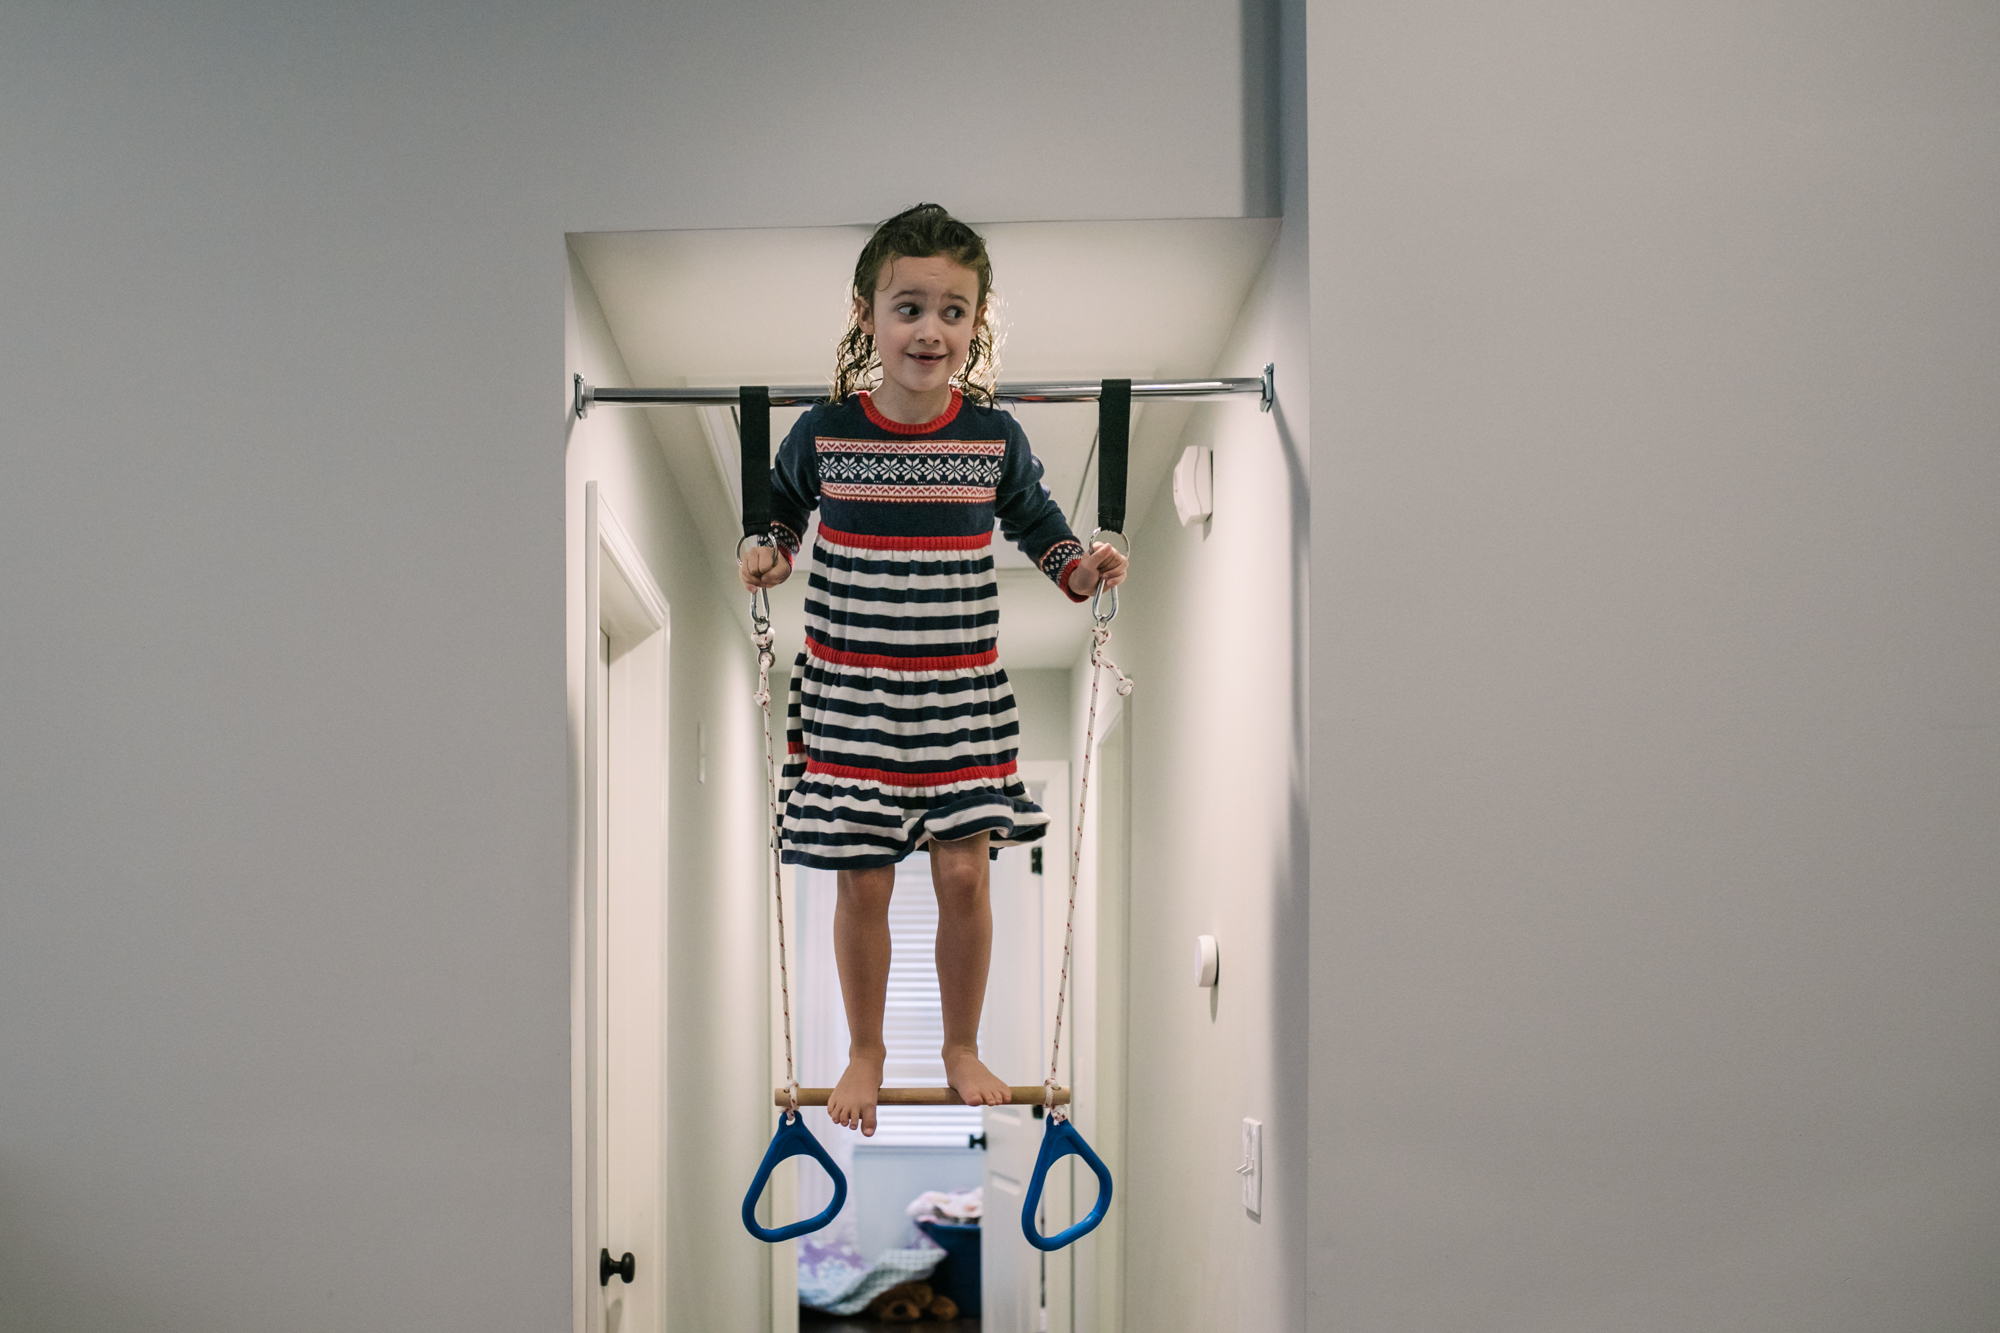 Young girl stands on an indoor swing during documentary family photography session